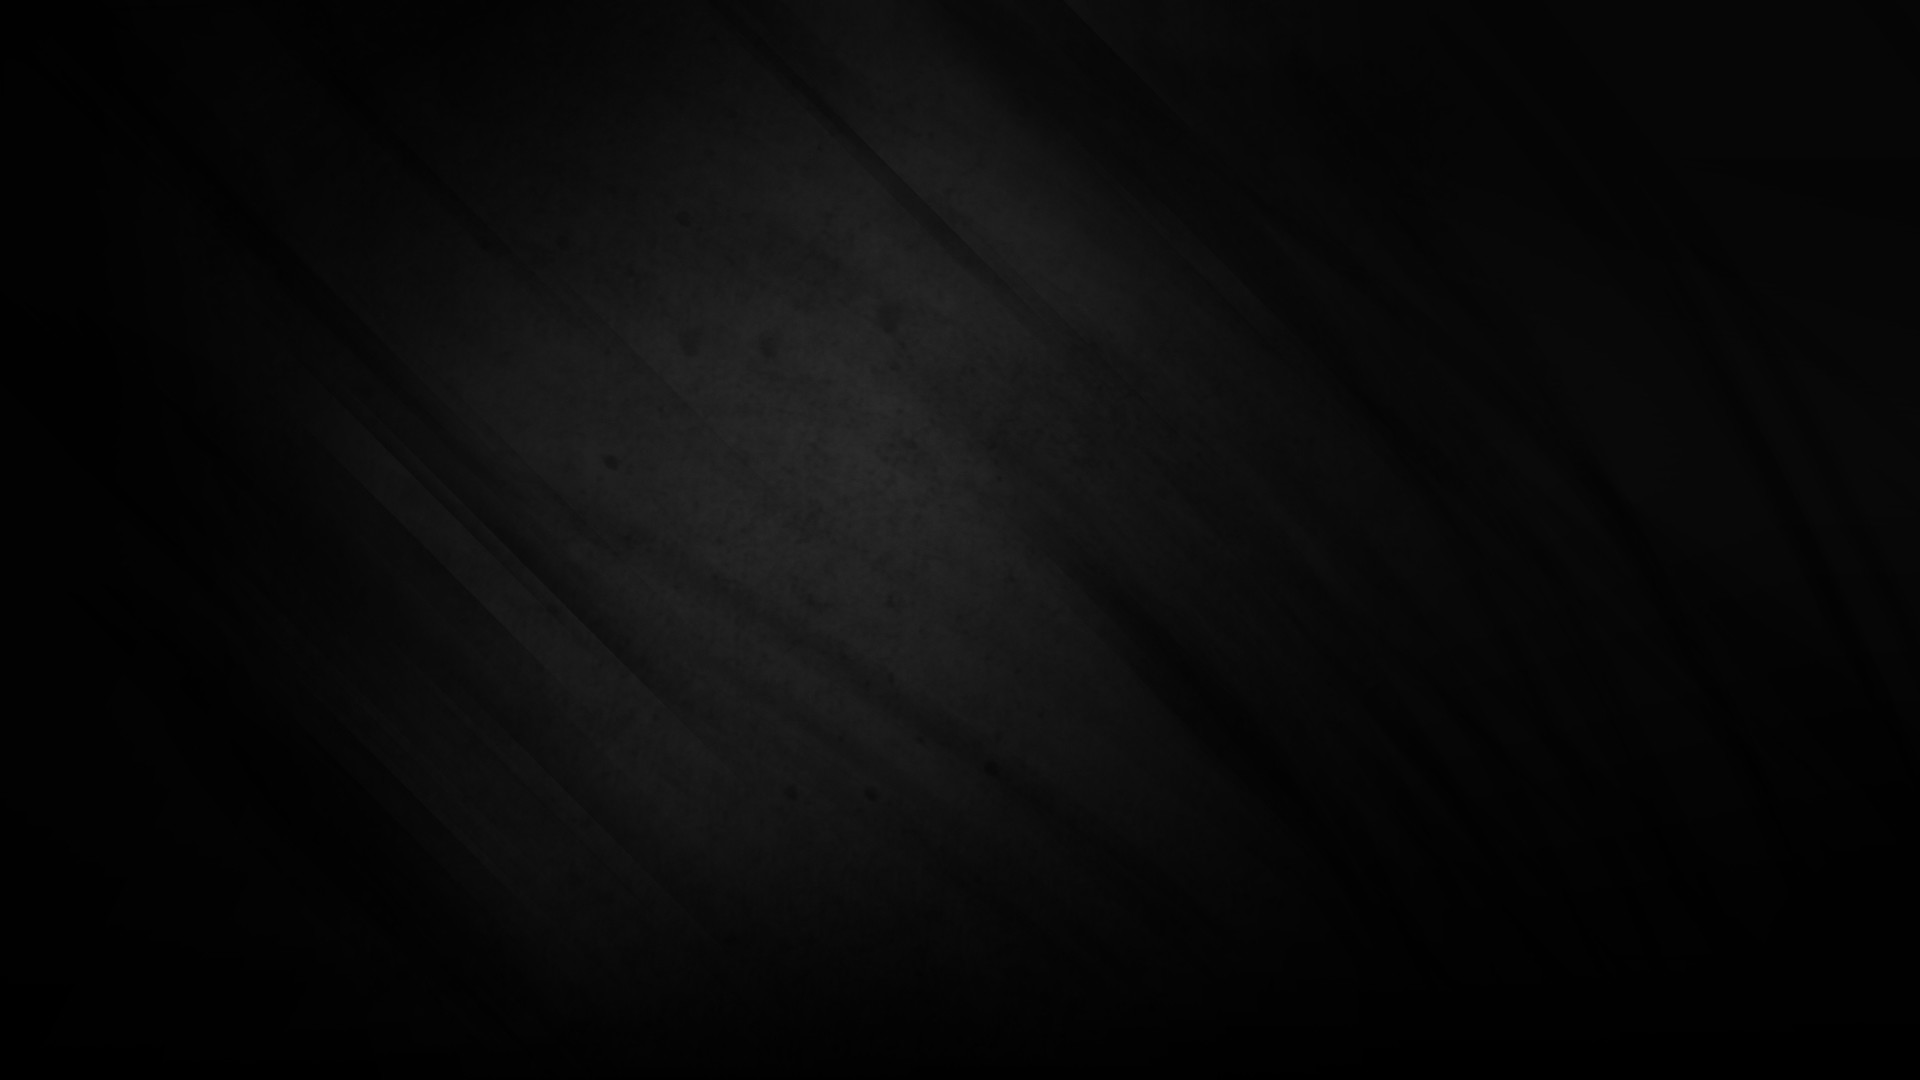 Solid Black Wallpaper For Android Wallpapersafari Solid Black Wallpaper  Solid Black Hd Wallpapers Backgrounds Solid Black Wallpaper